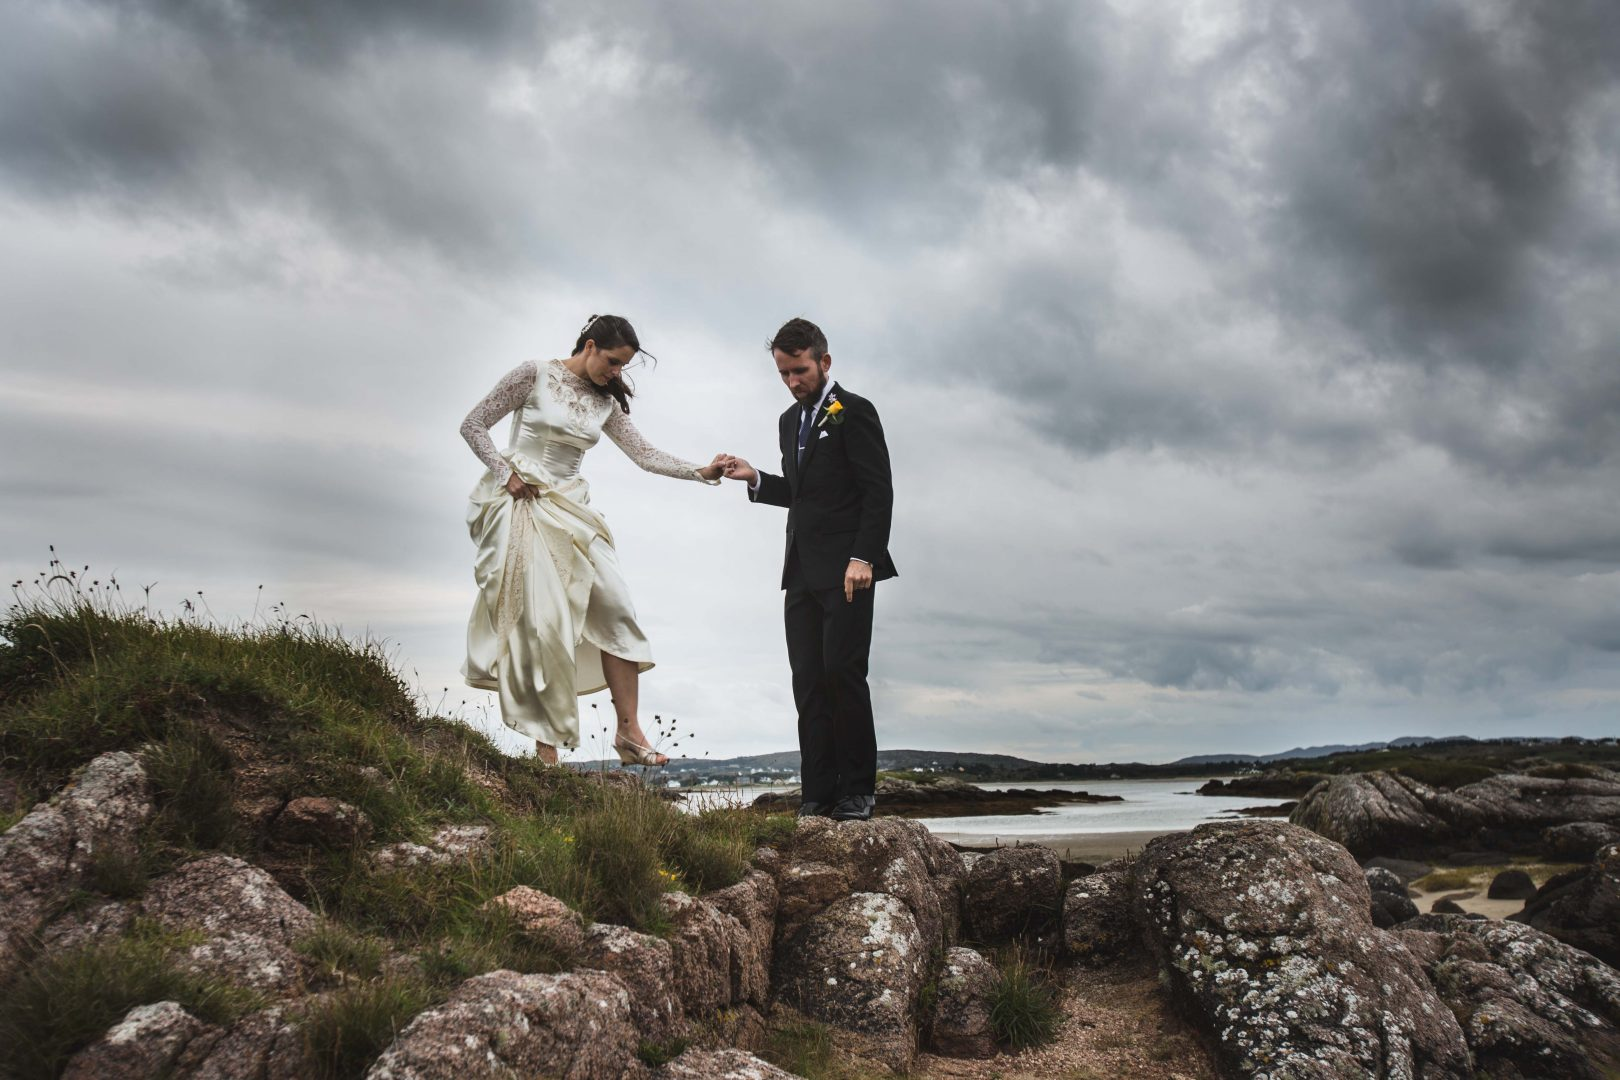 SARAH_GRAY_PHOTOGRAPHY_IRELAND_DONEGAL_WEDDING_40_3